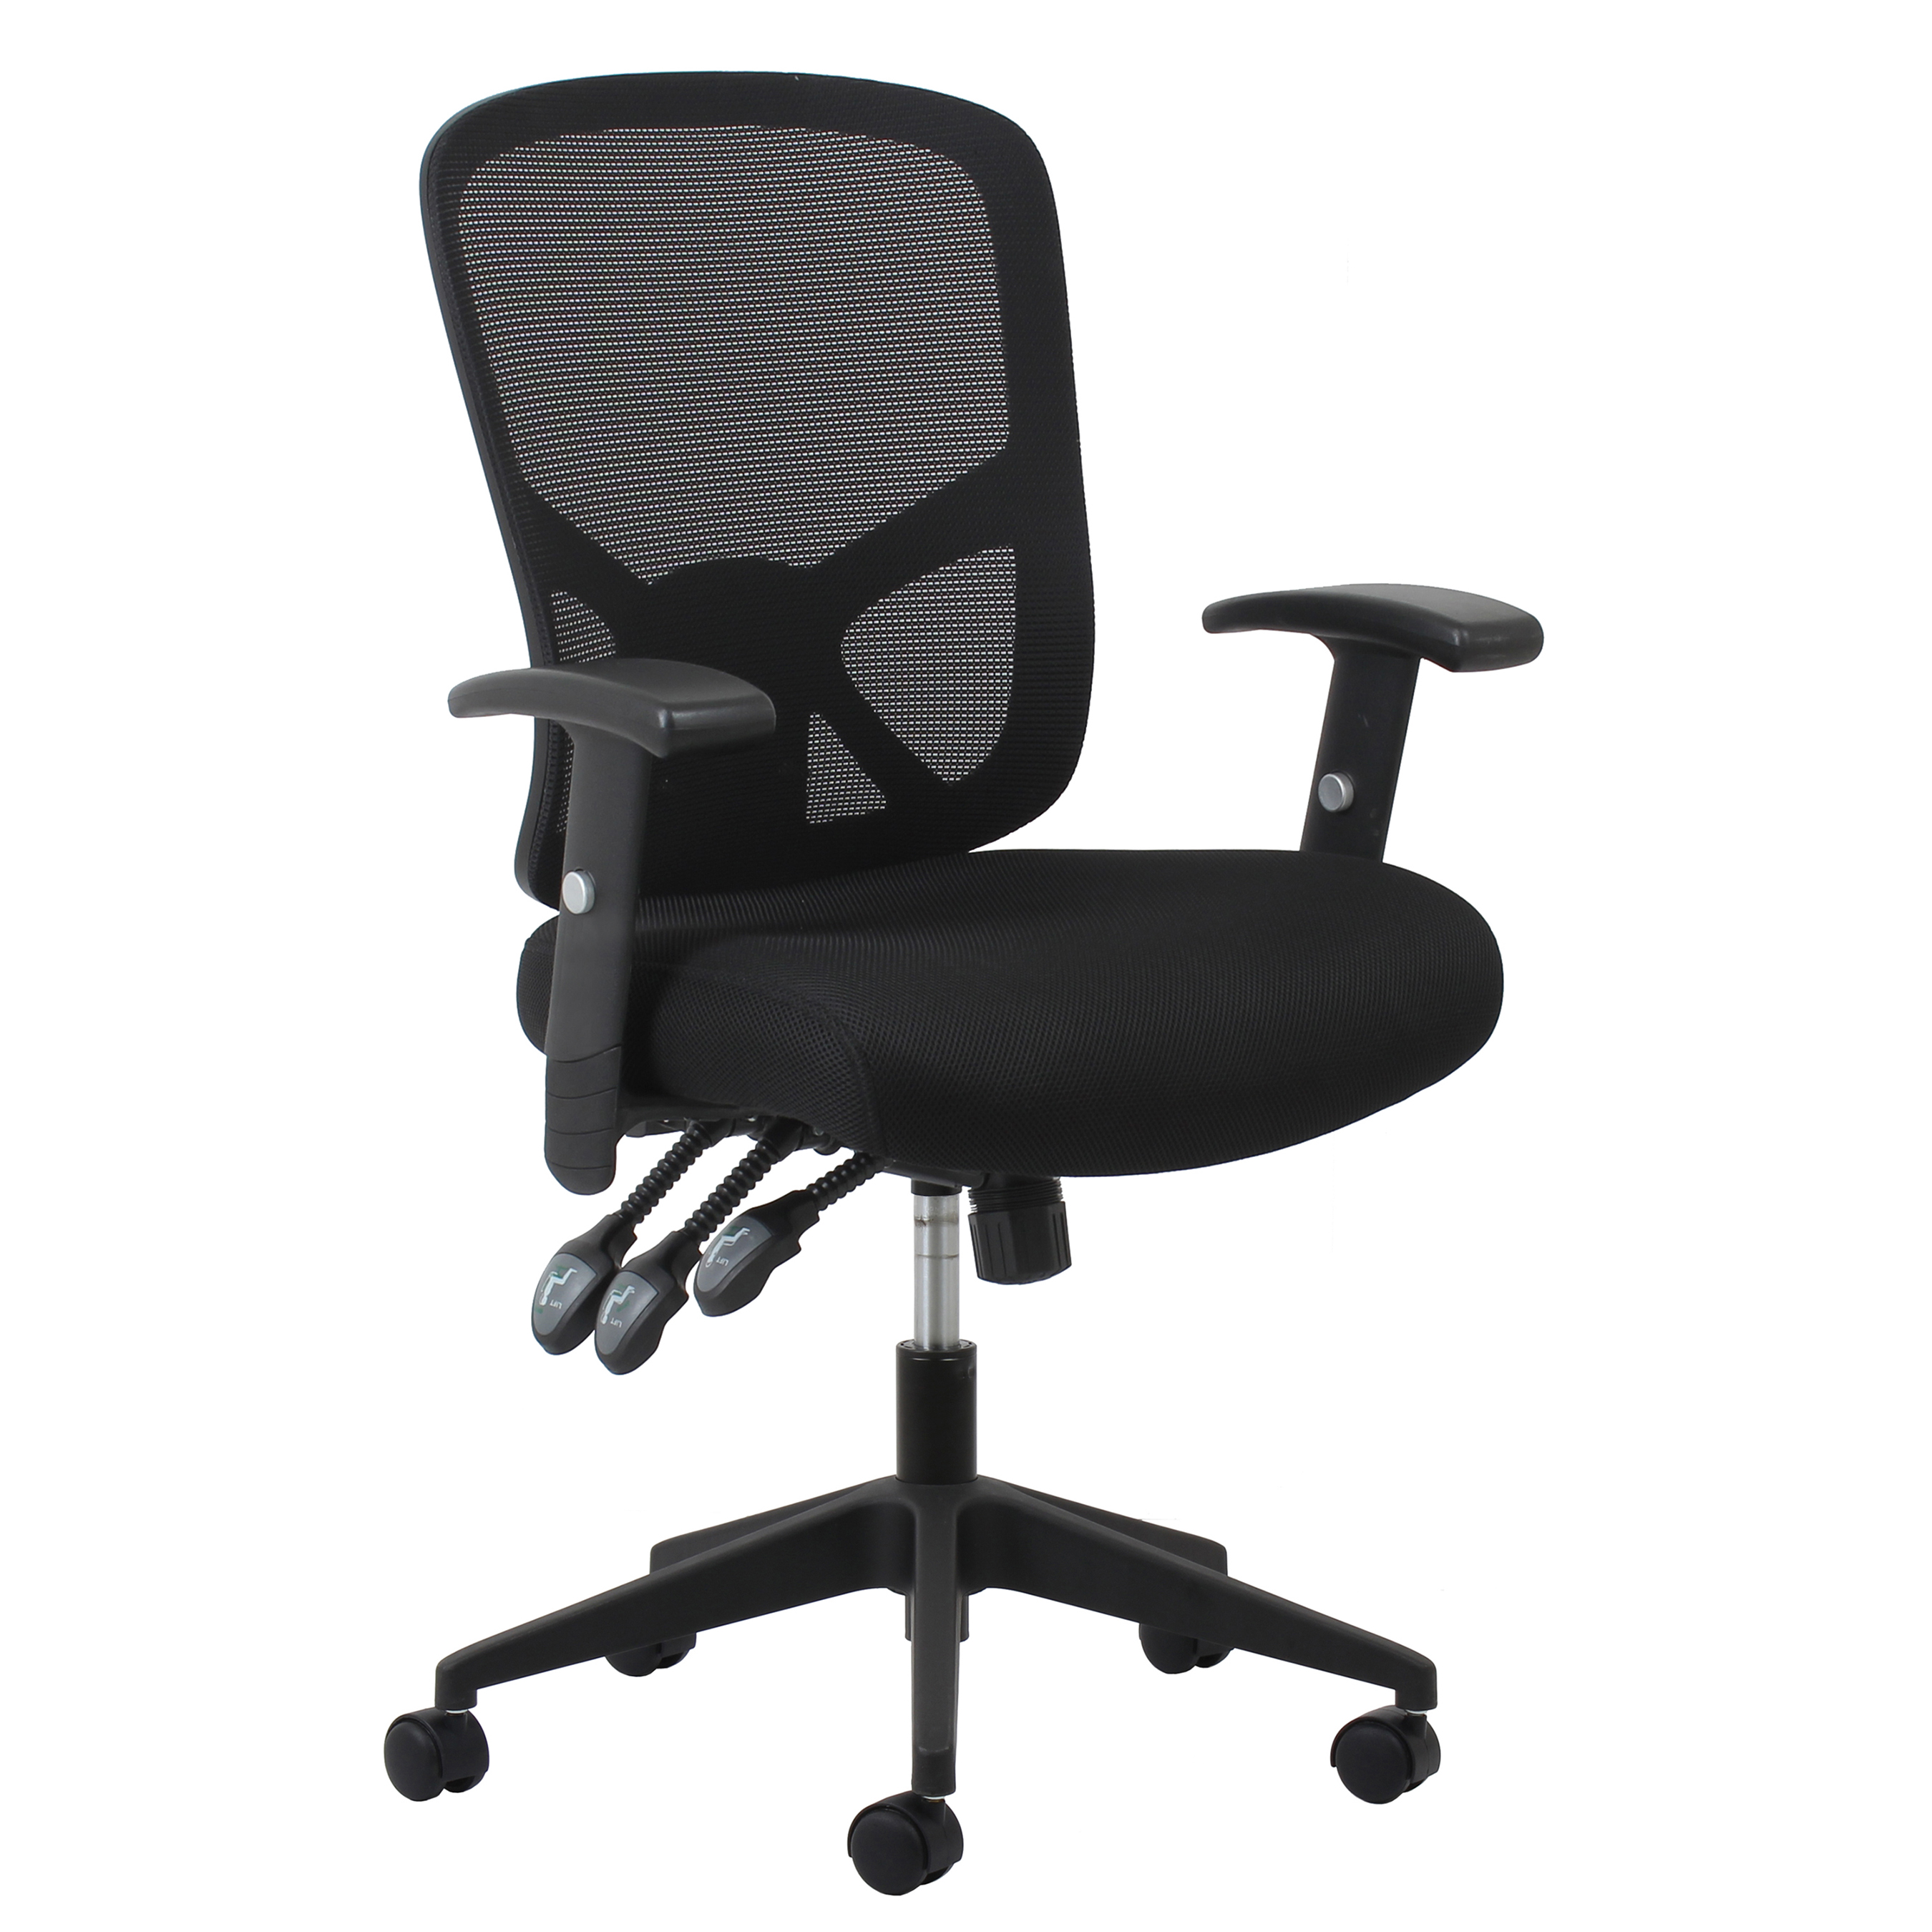 Essentials by OFM ESS-3050 3-Paddle Ergonomic Mesh High-Back Task Chair with Arms and Lumbar Support, Black